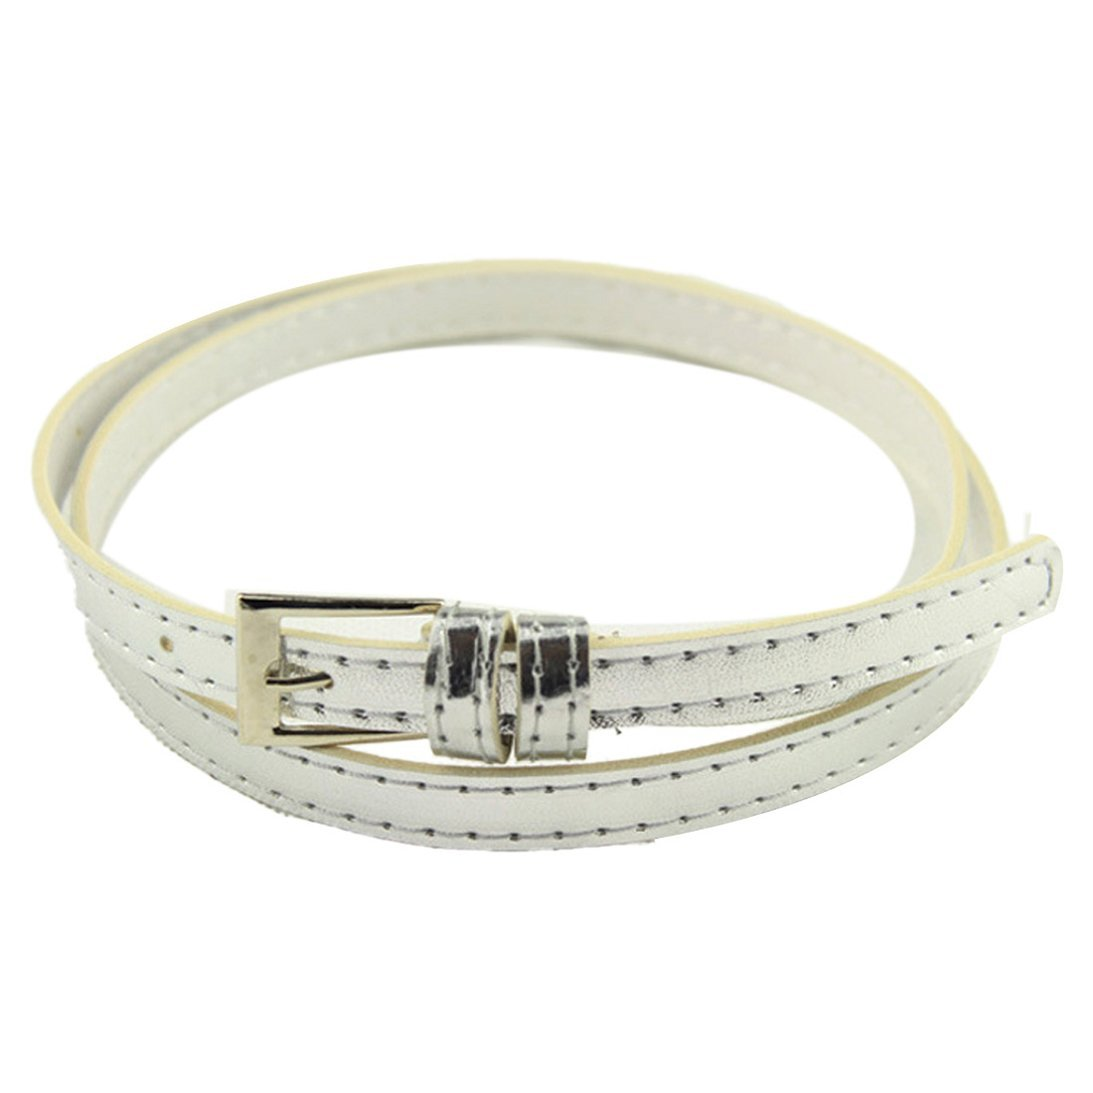 Sunward Woman Multicolor Small Candy Color Thin Leather Belt Ms Belt (Silver)